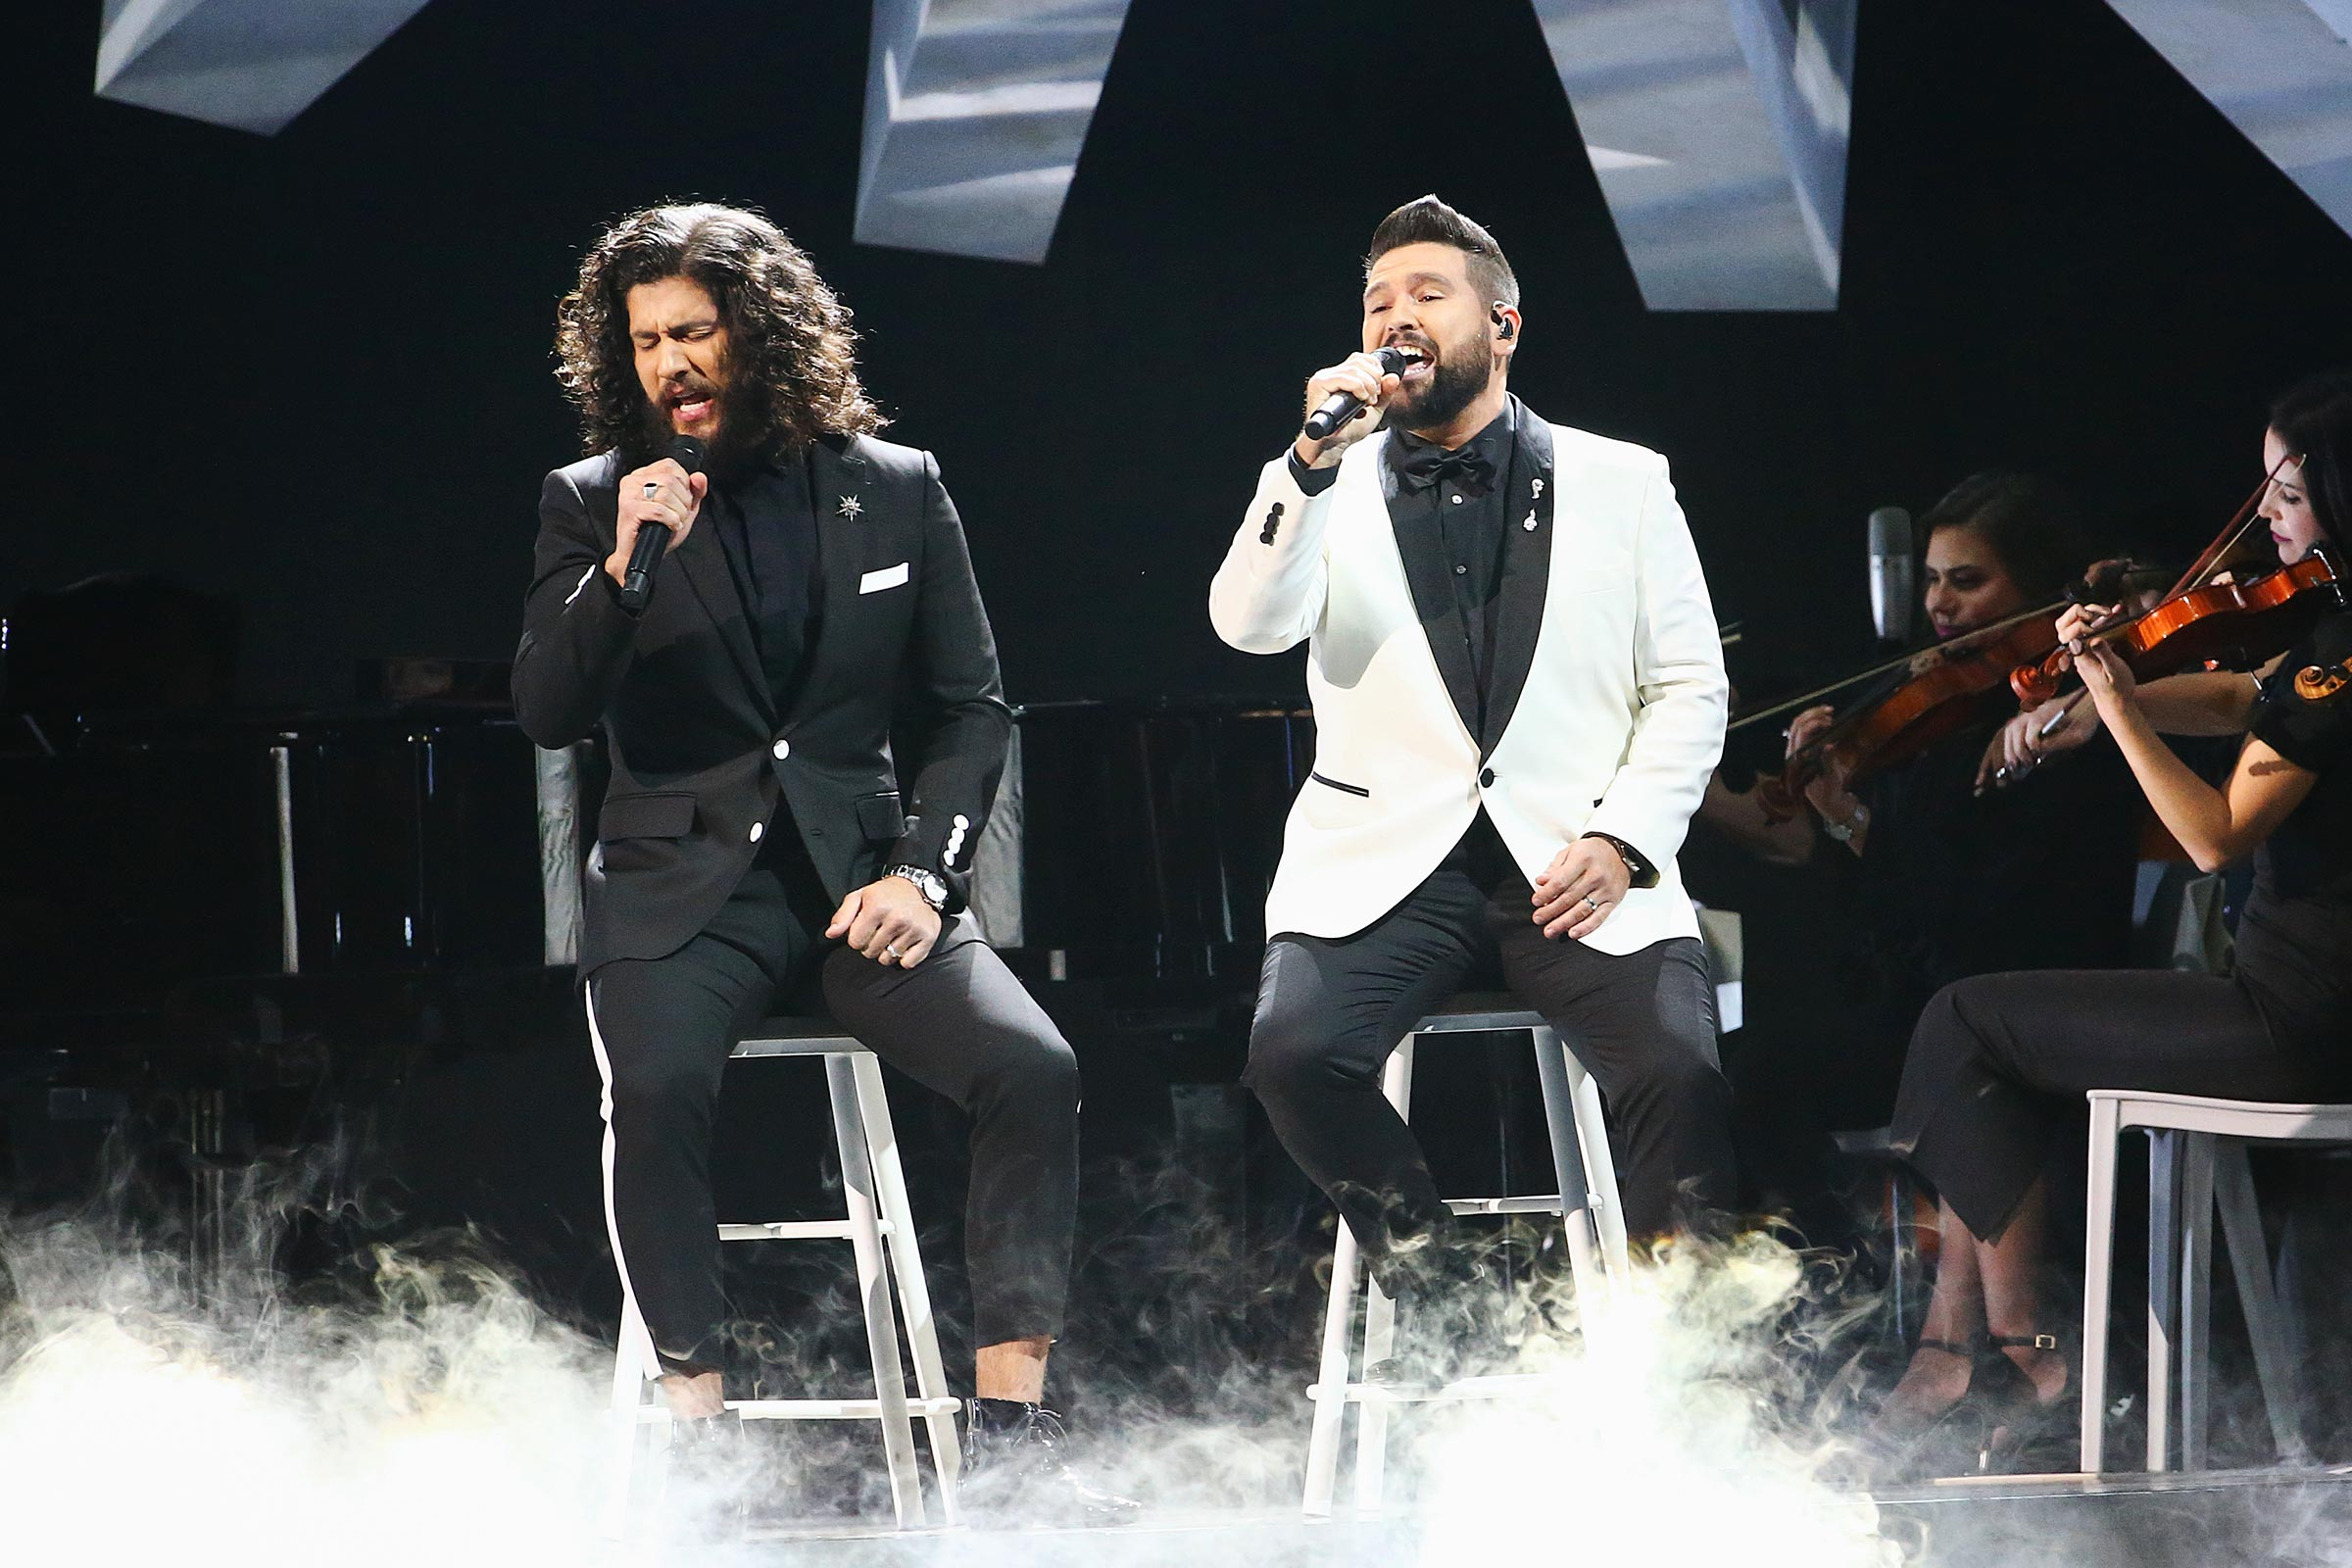 Dan + Shay Cancel Their Stagecoach Set and Postpone Tour Due to Coronavirus: 'It's a Strange Time'